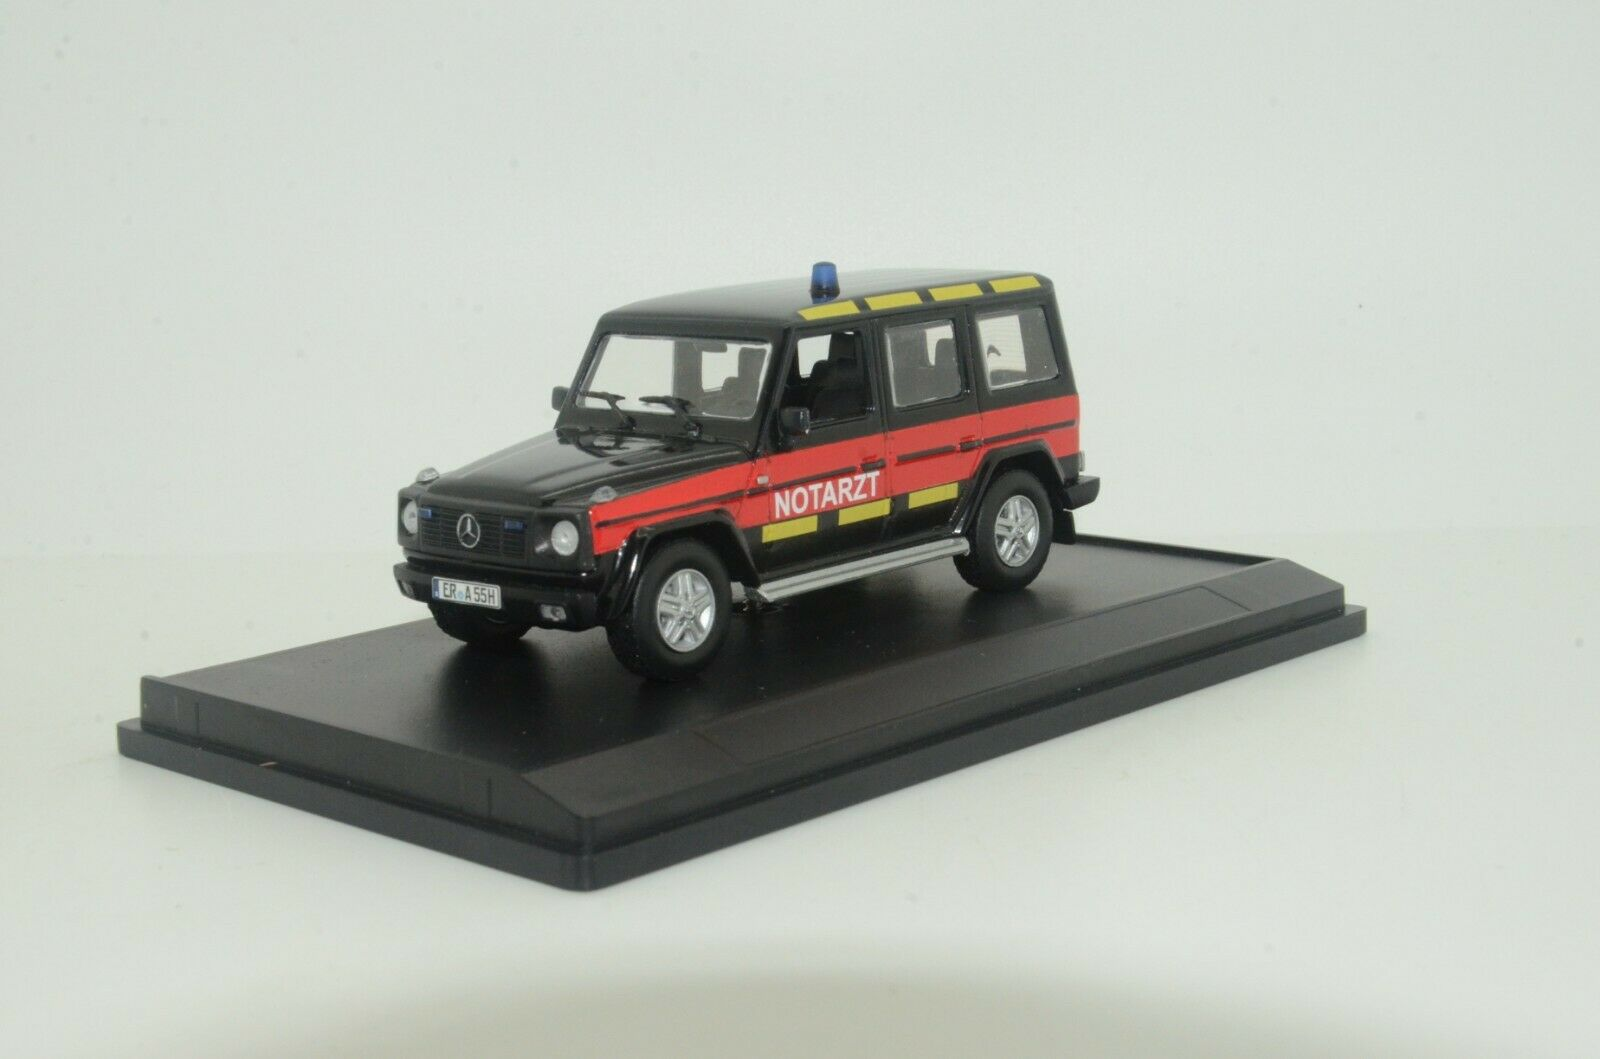 RARE     Mercedes G Notarzt Ambulance Custom Made 1 43